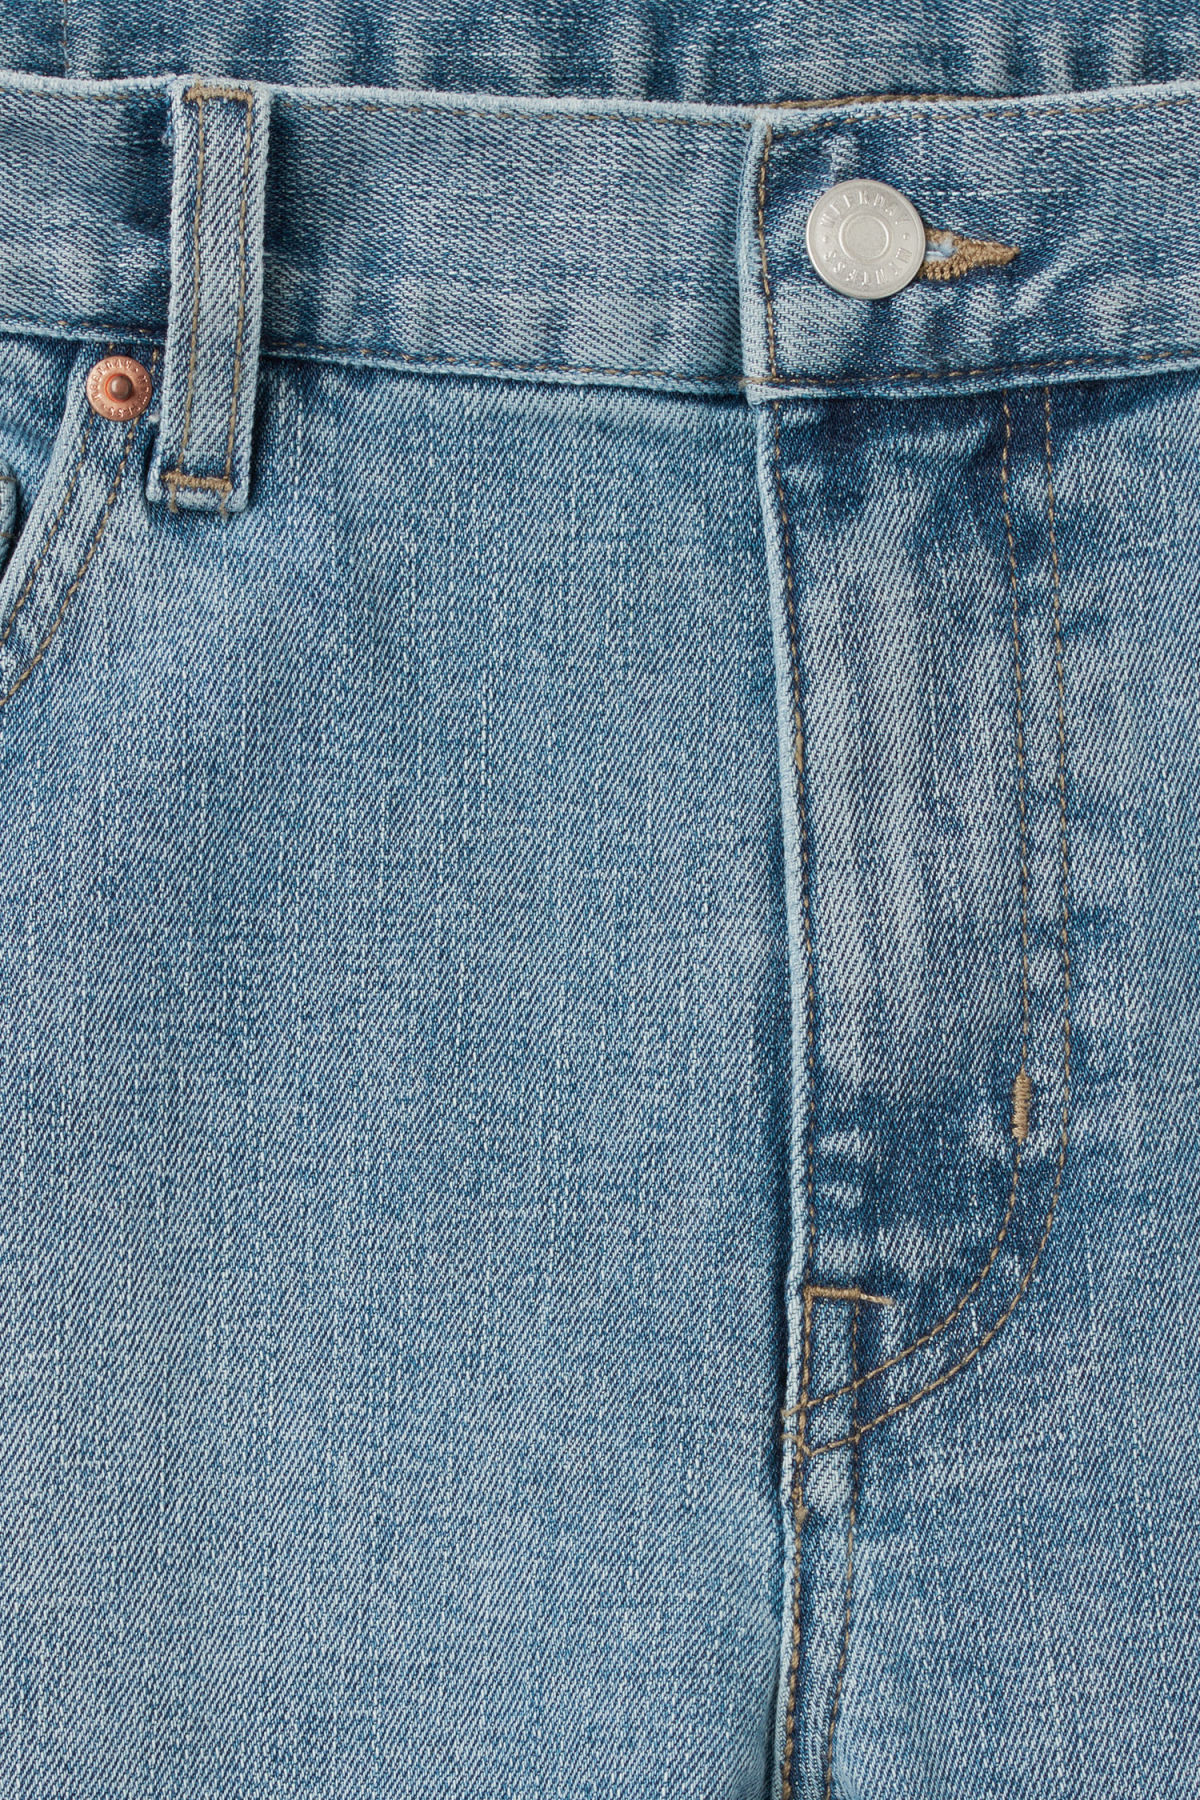 Detailed image of Weekday form washed blue jeans in blue